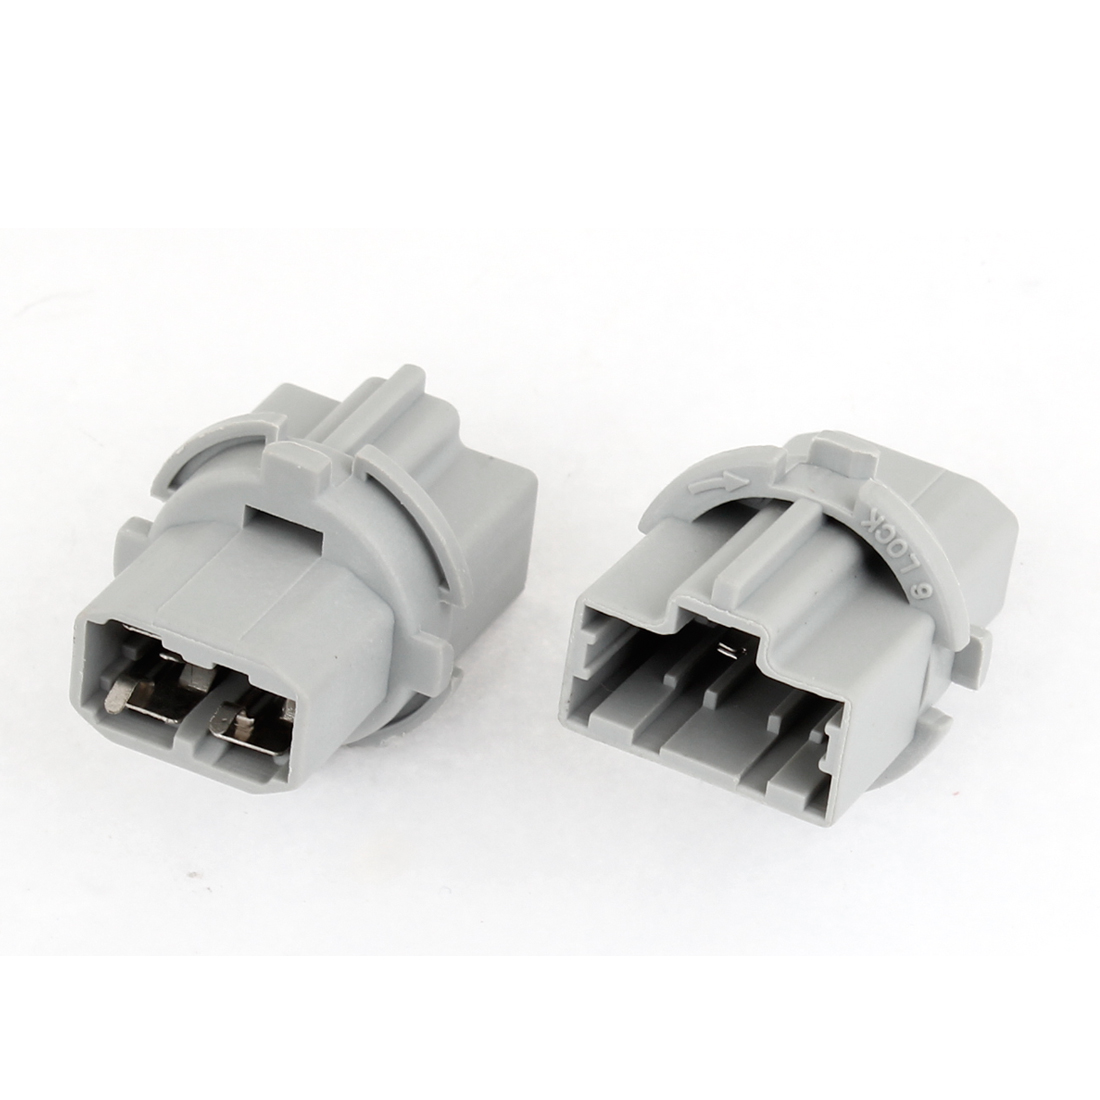 2 x T20 Gray Plastic Turn Brake Turning Light Socket for Car